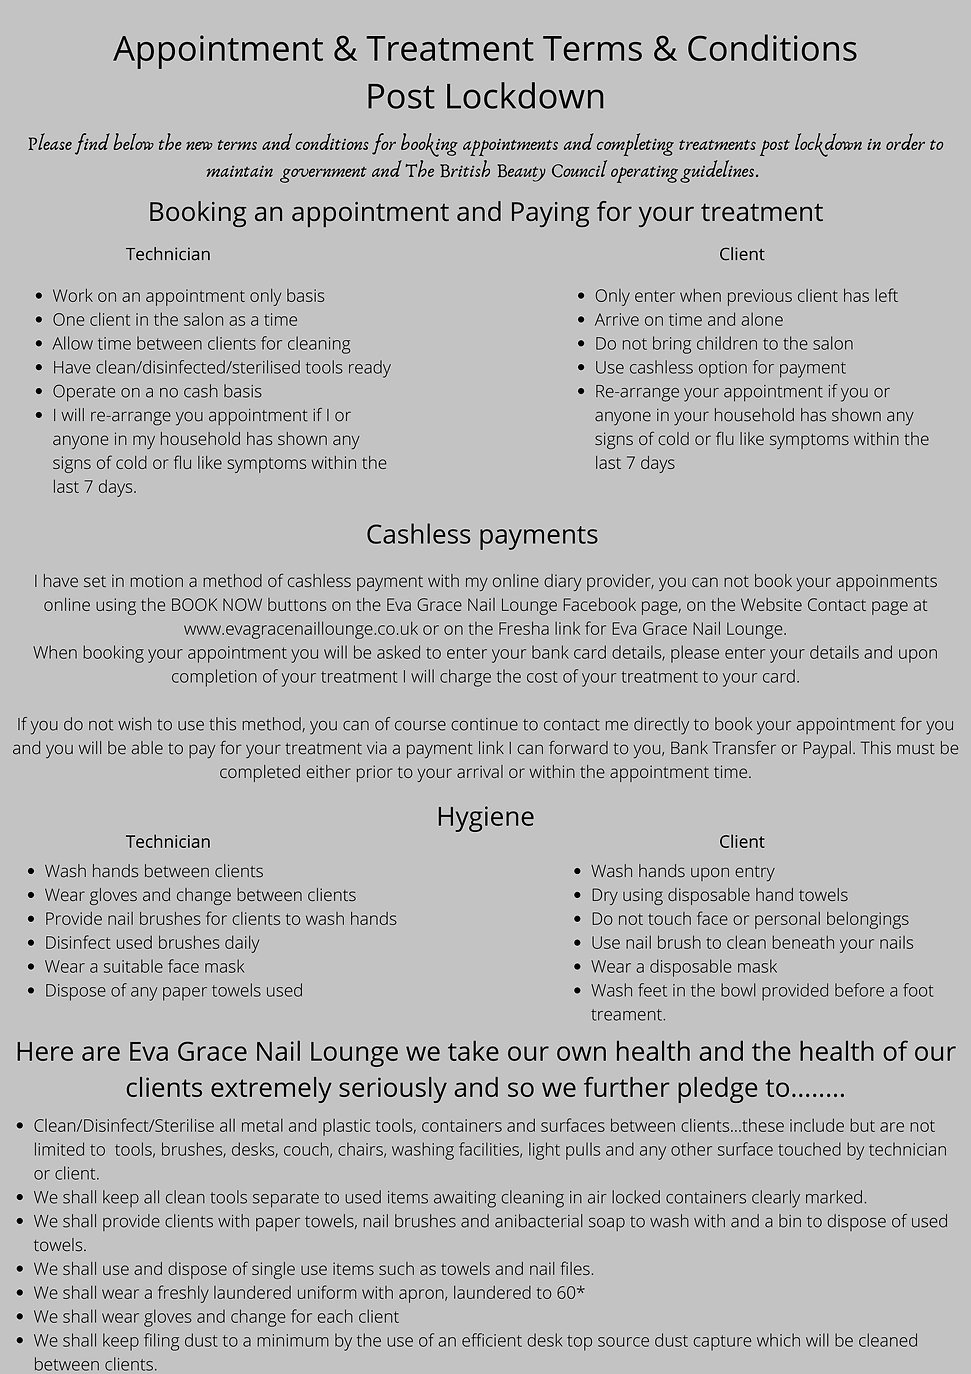 Appointment Terms & Conditions.jpg